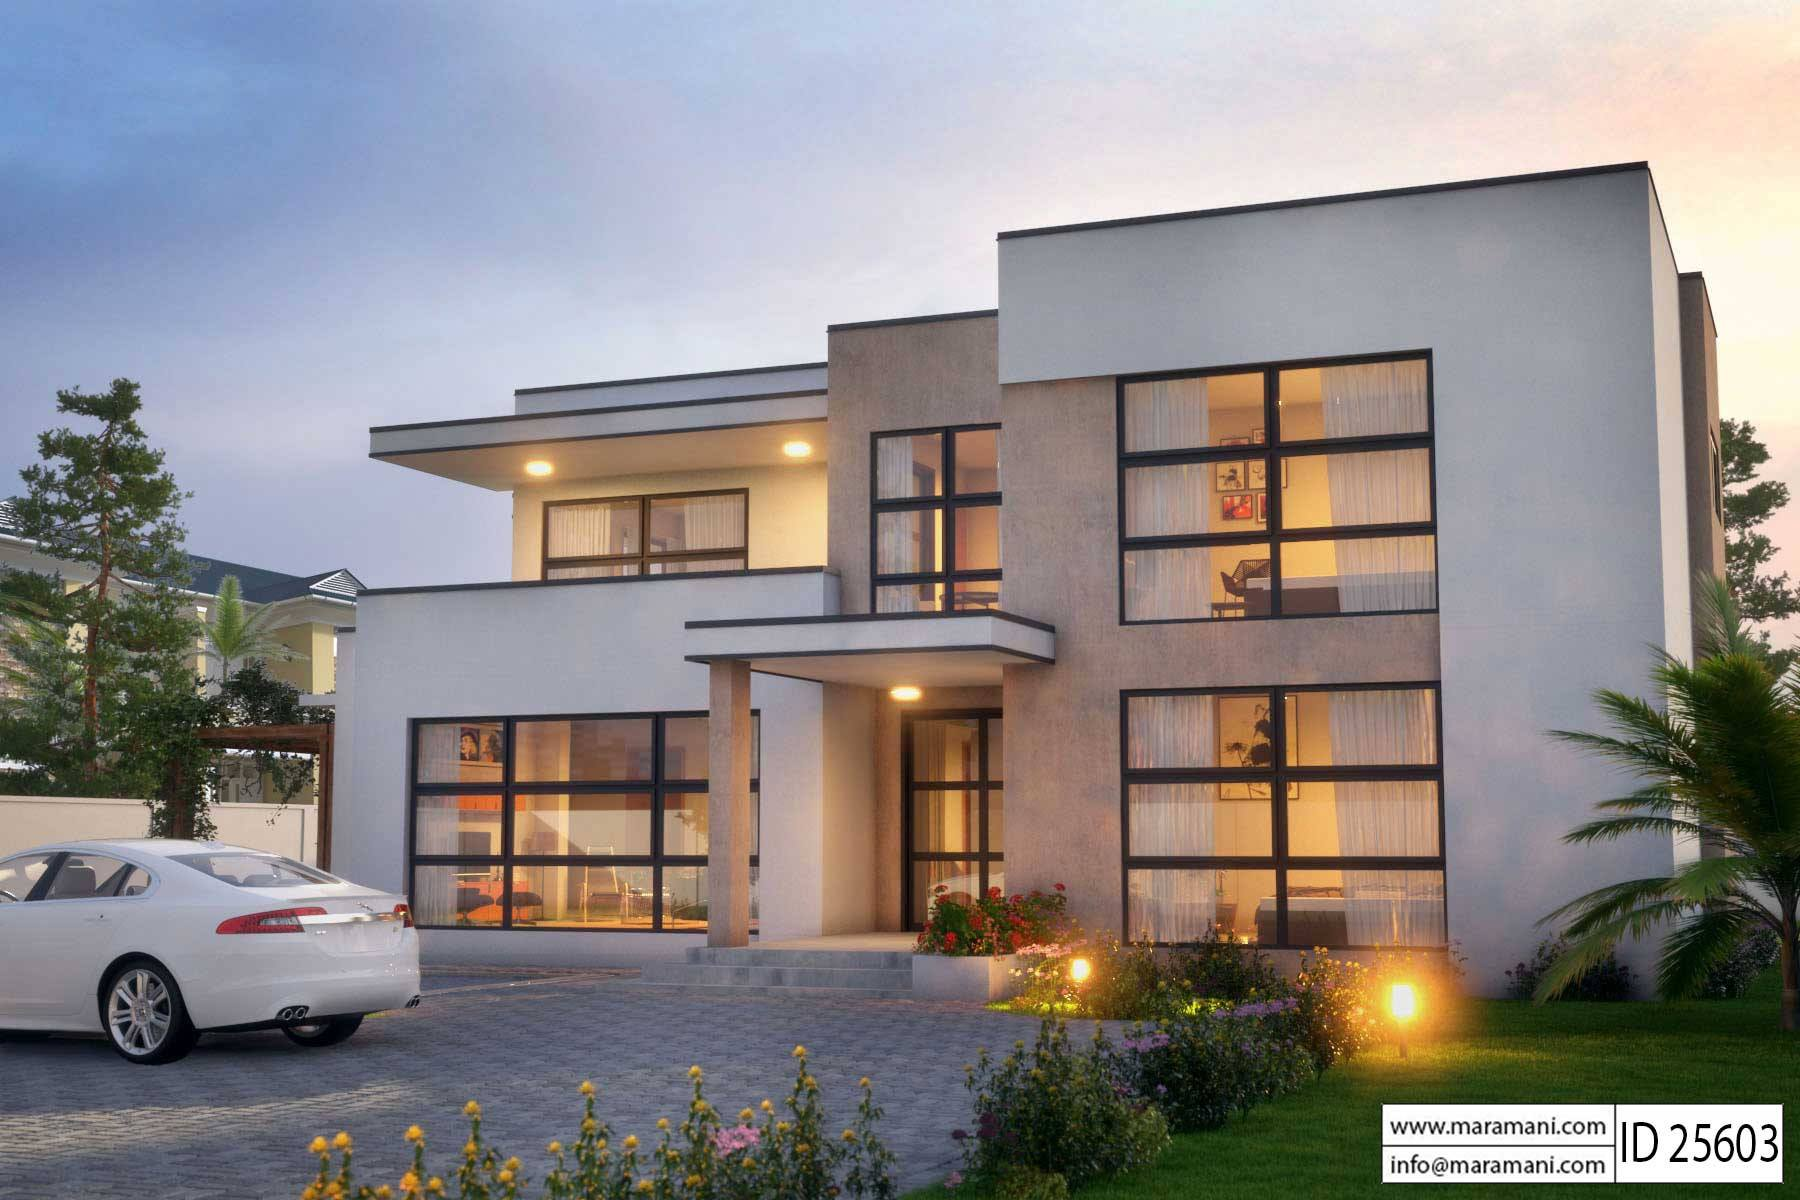 Modern 5 bedroom house design id 25603 floor plans by for 5 bedroom house ideas